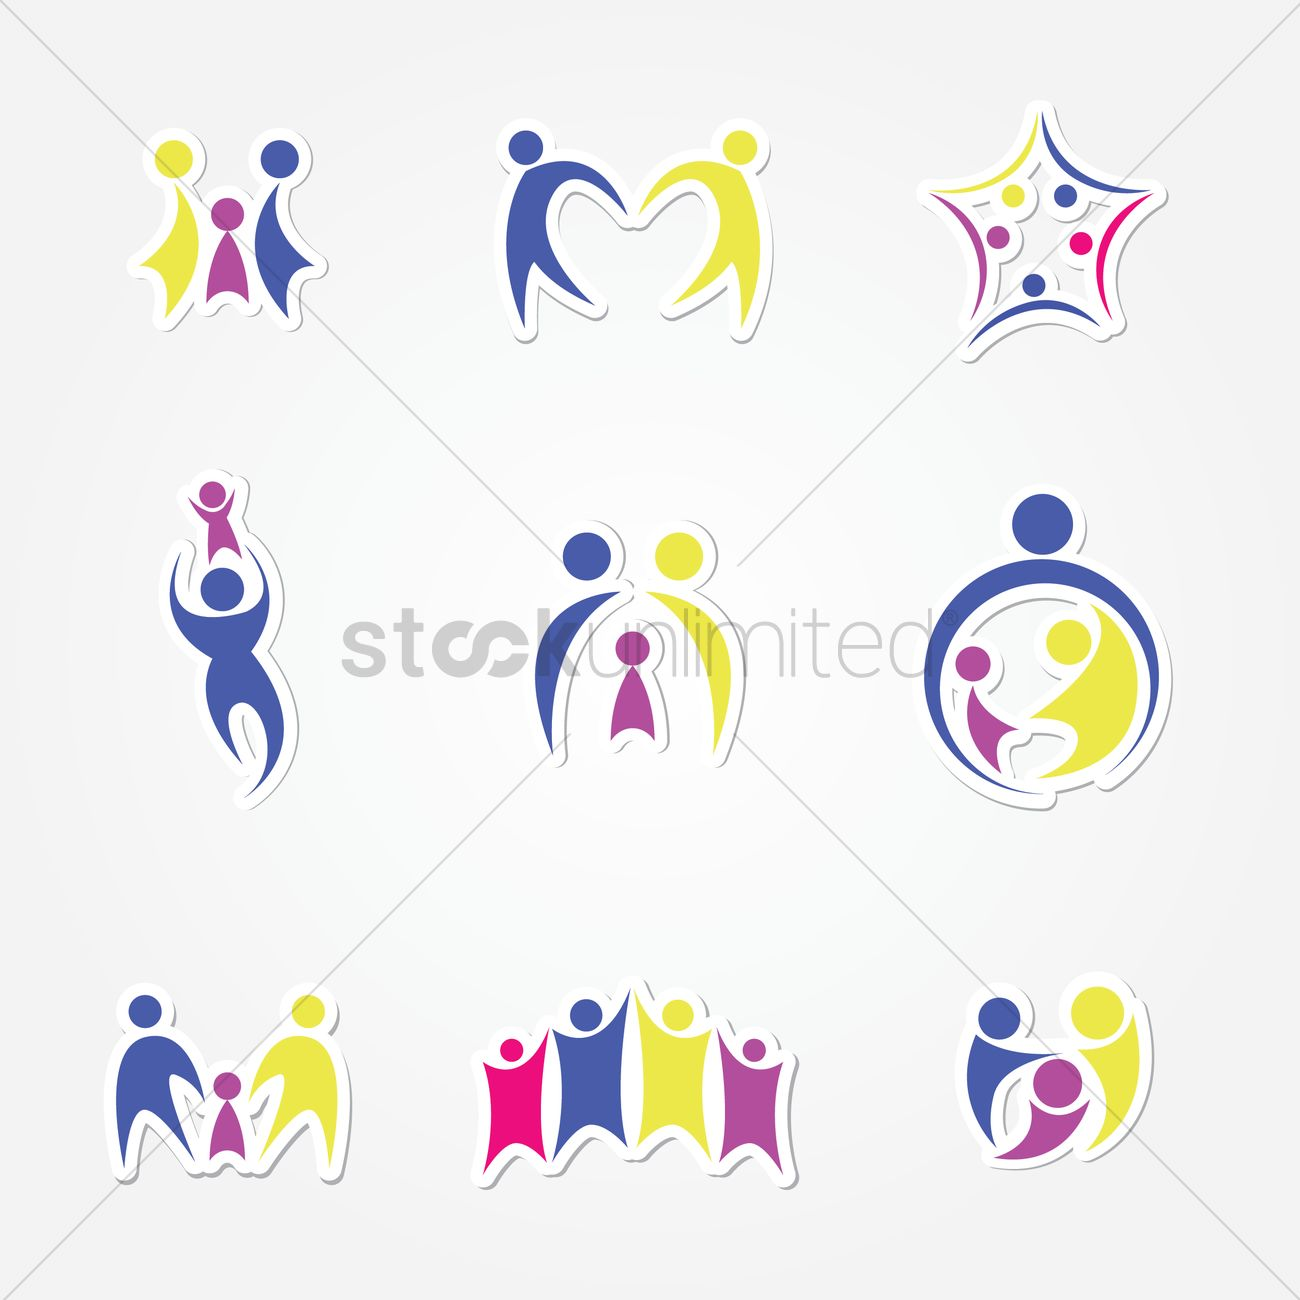 Family logo Vector Image - 1243730 | StockUnlimited